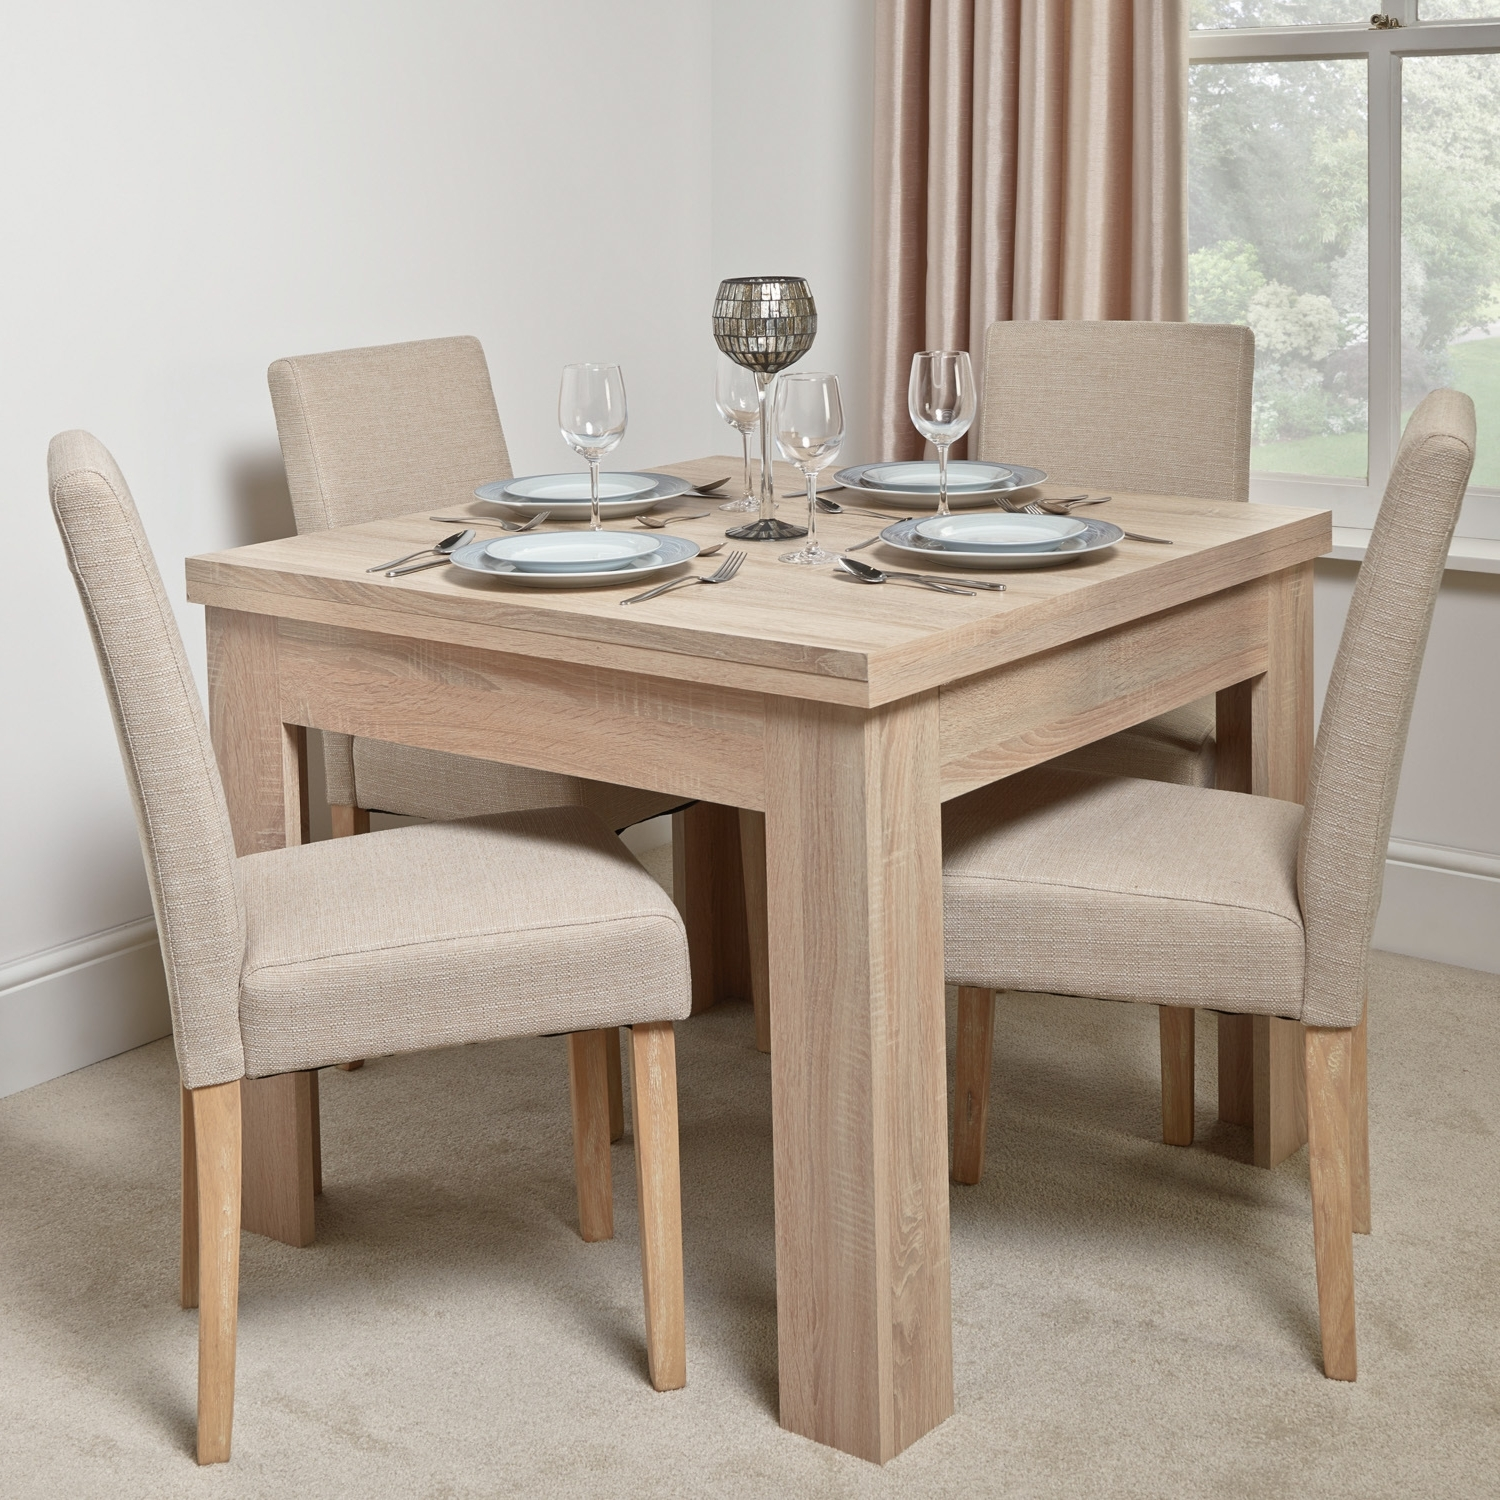 Extendable Dining Sets Pertaining To Most Up To Date Calpe Flip Extending Dining Table (View 9 of 25)